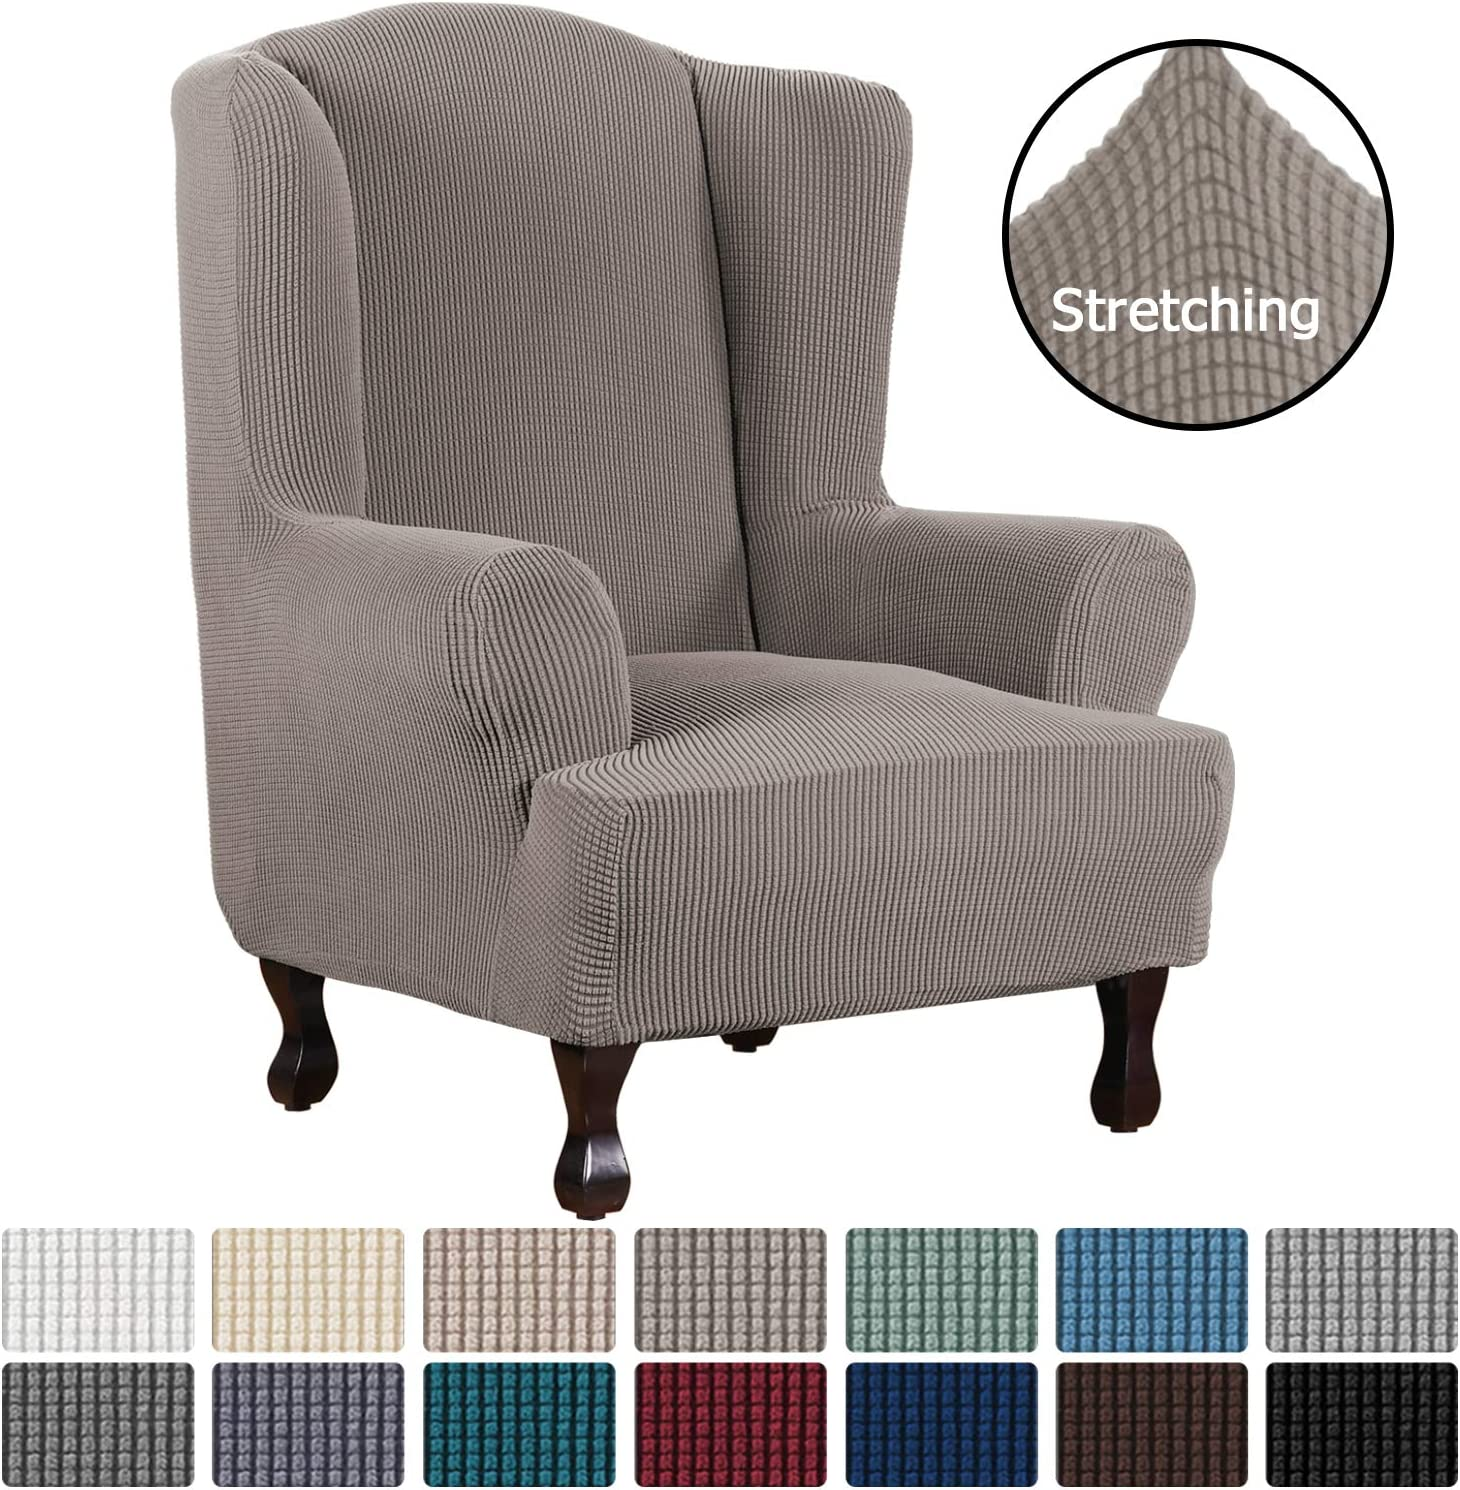 H.VERSAILTEX 1 Piece Super Stretch Stylish Furniture Cover/Wingback Chair Cover Slipcover Spandex Jacquard Checked Pattern, Super Soft Slipcover Machine Washable/Skid Resistance (Wing Chair, Taupe)